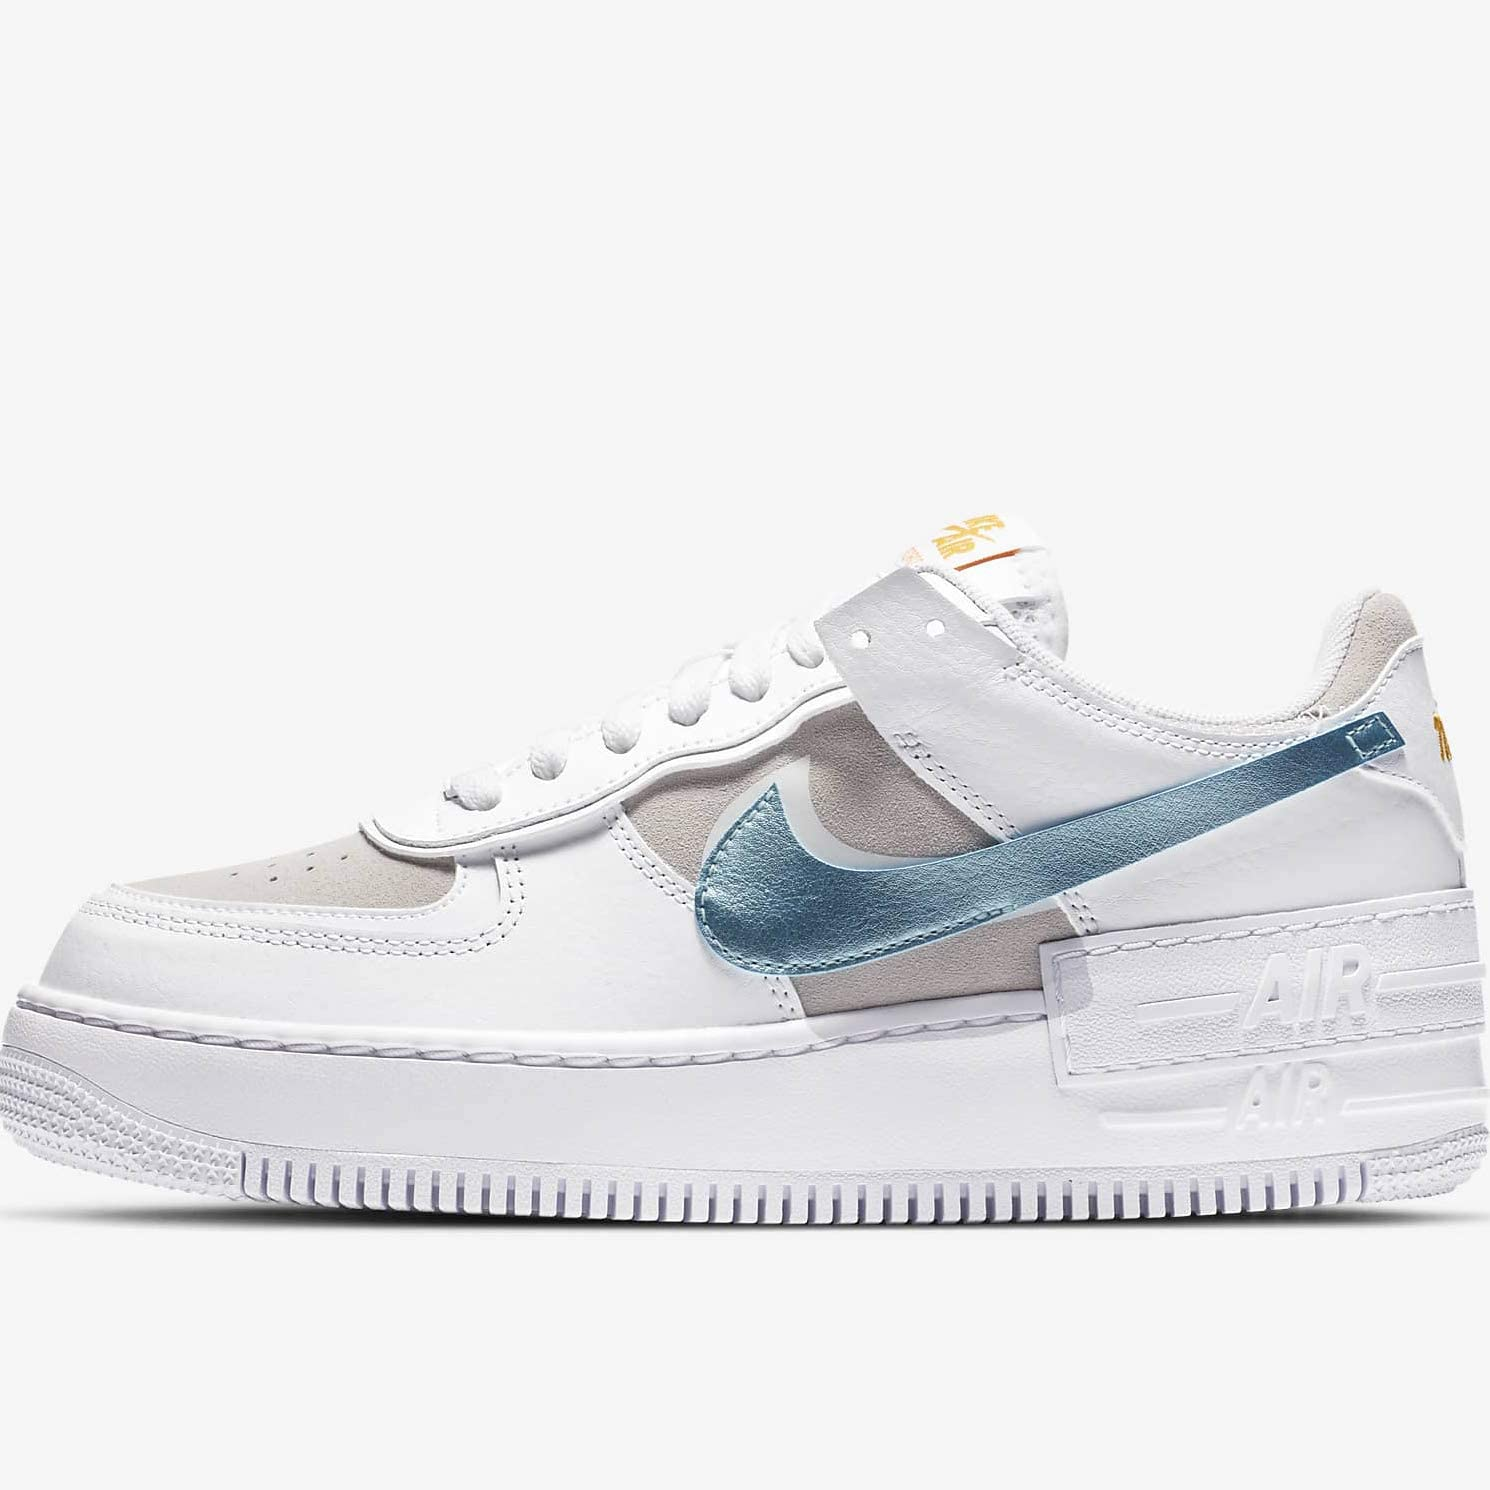 2021 Where To Buy Wholesale Cheap Nike Air Force 1 Shadow White Bust Gray Gold Glacier Ice DA4286-100 - www.wholesaleflyknit.com